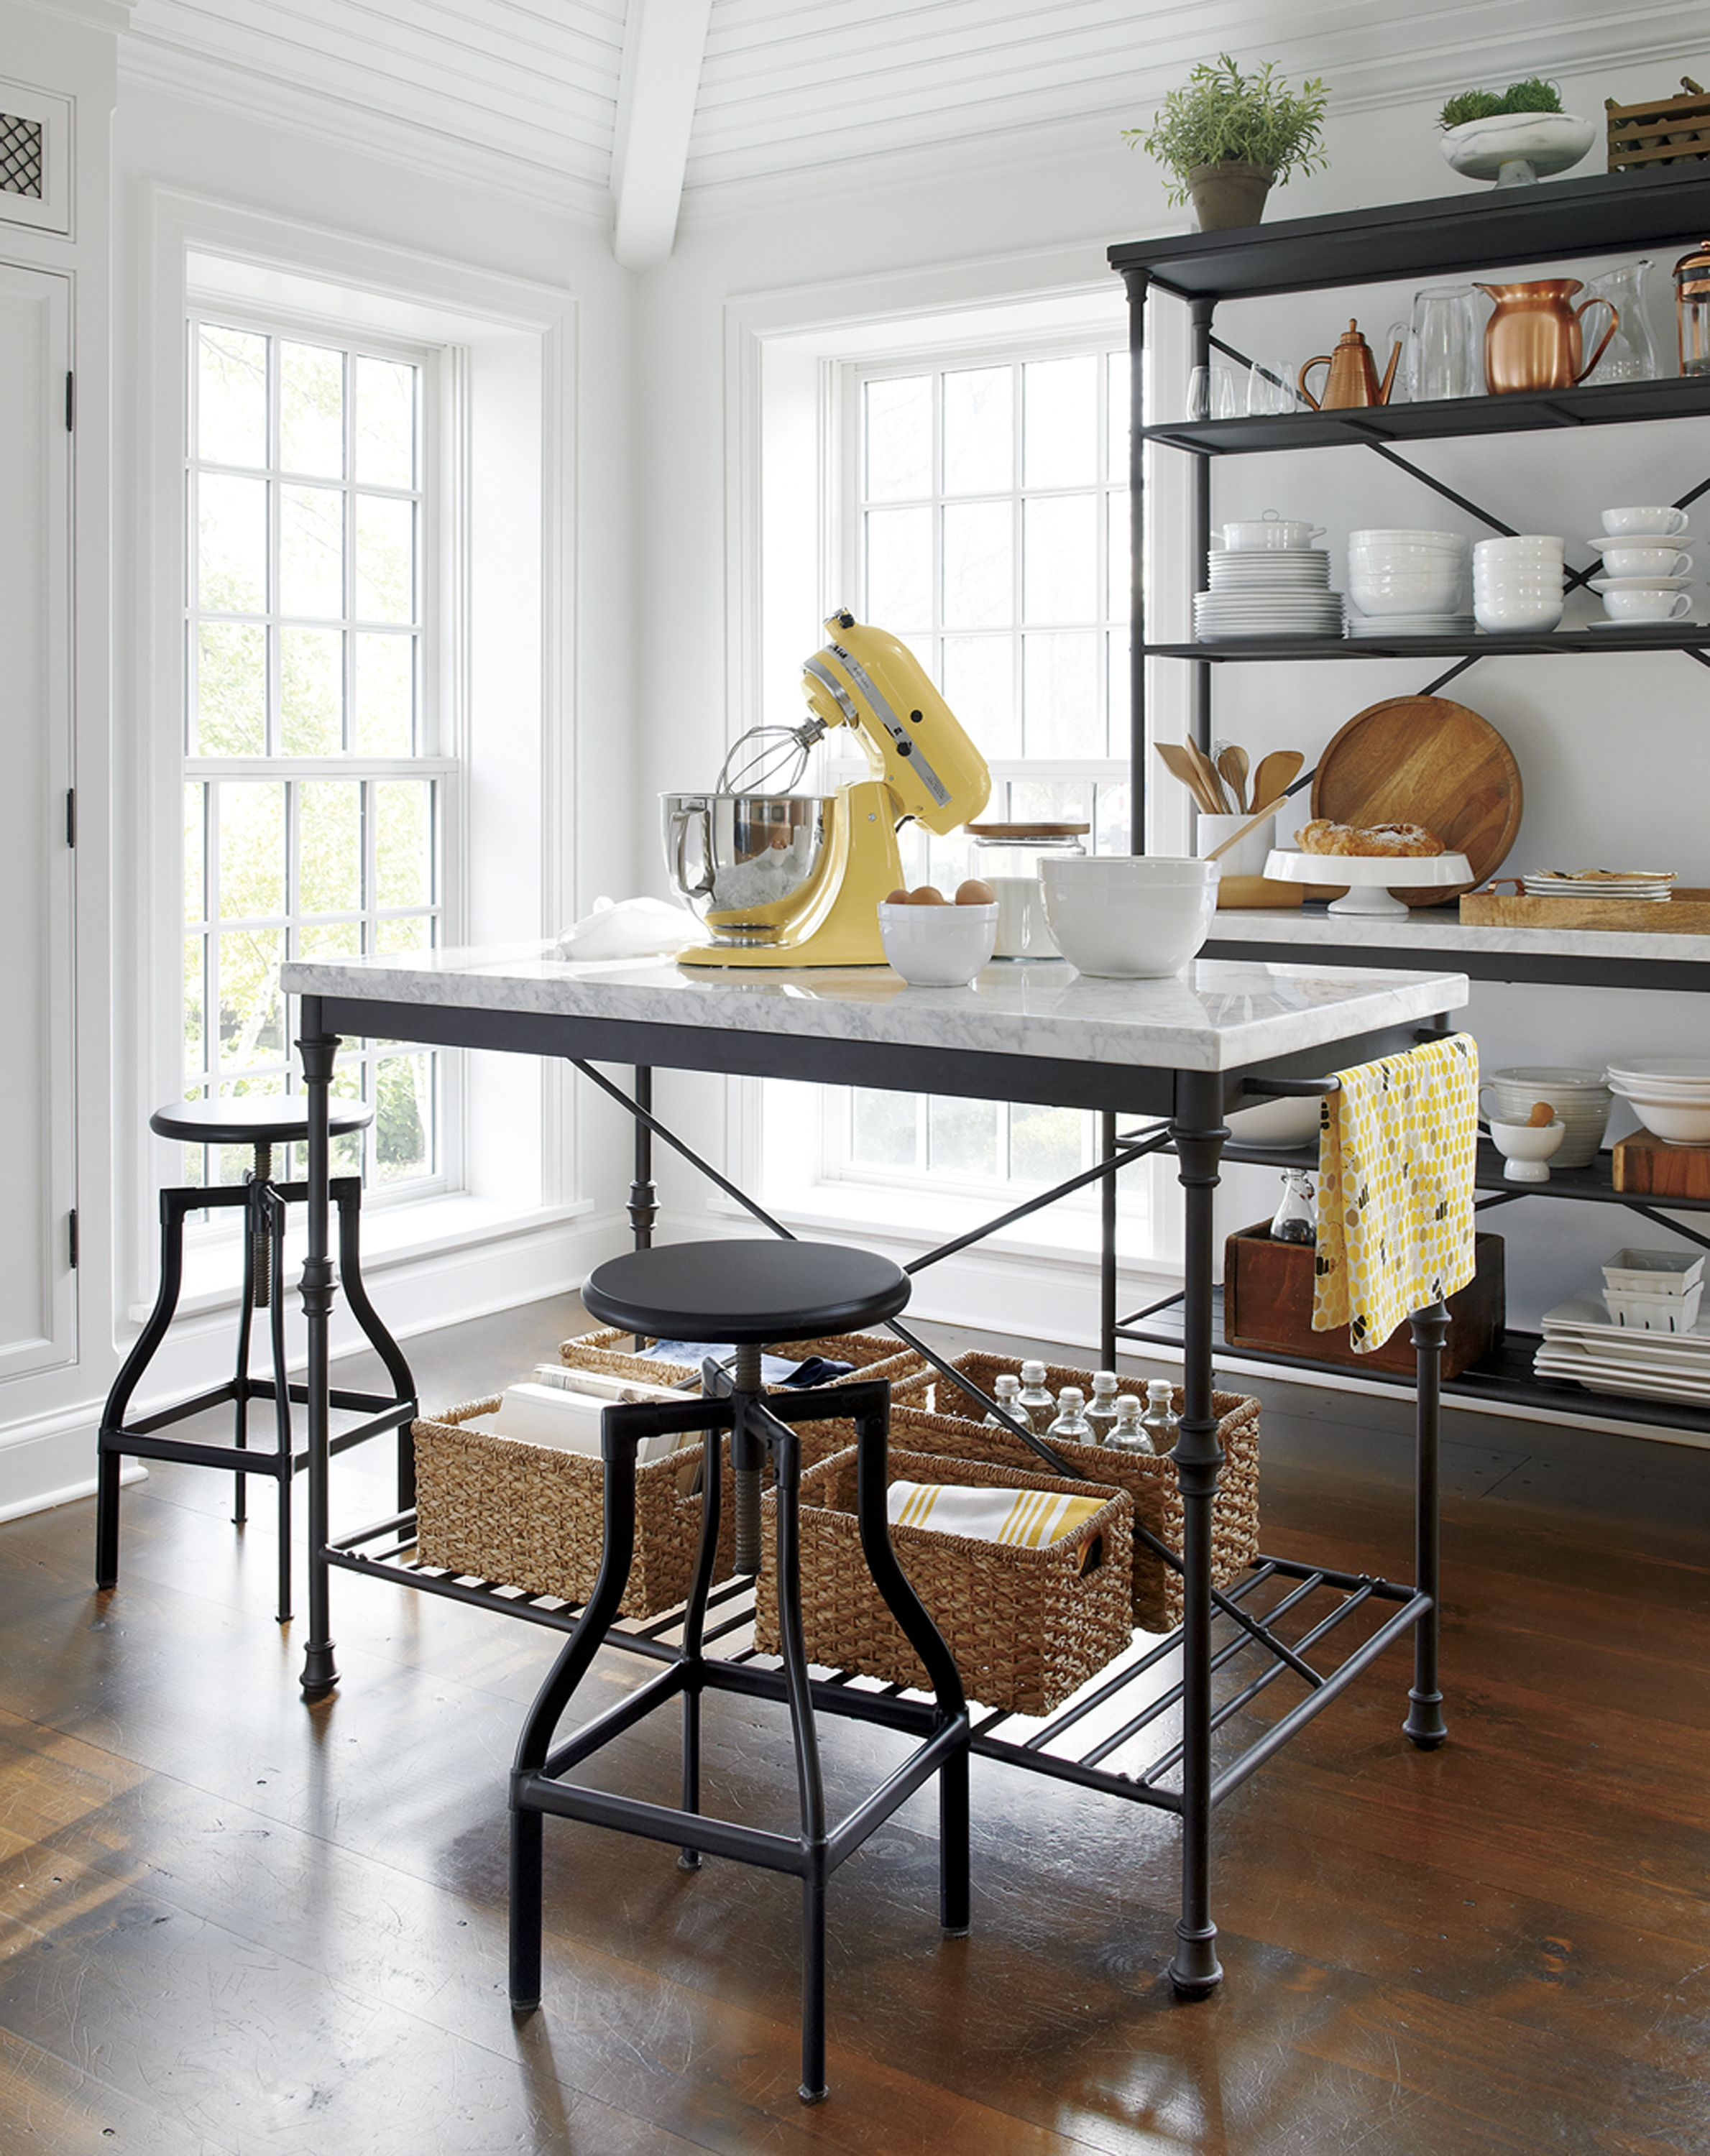 French Kitchen Island | Kitchens | Pinterest | Pastry shop, Timeless ...